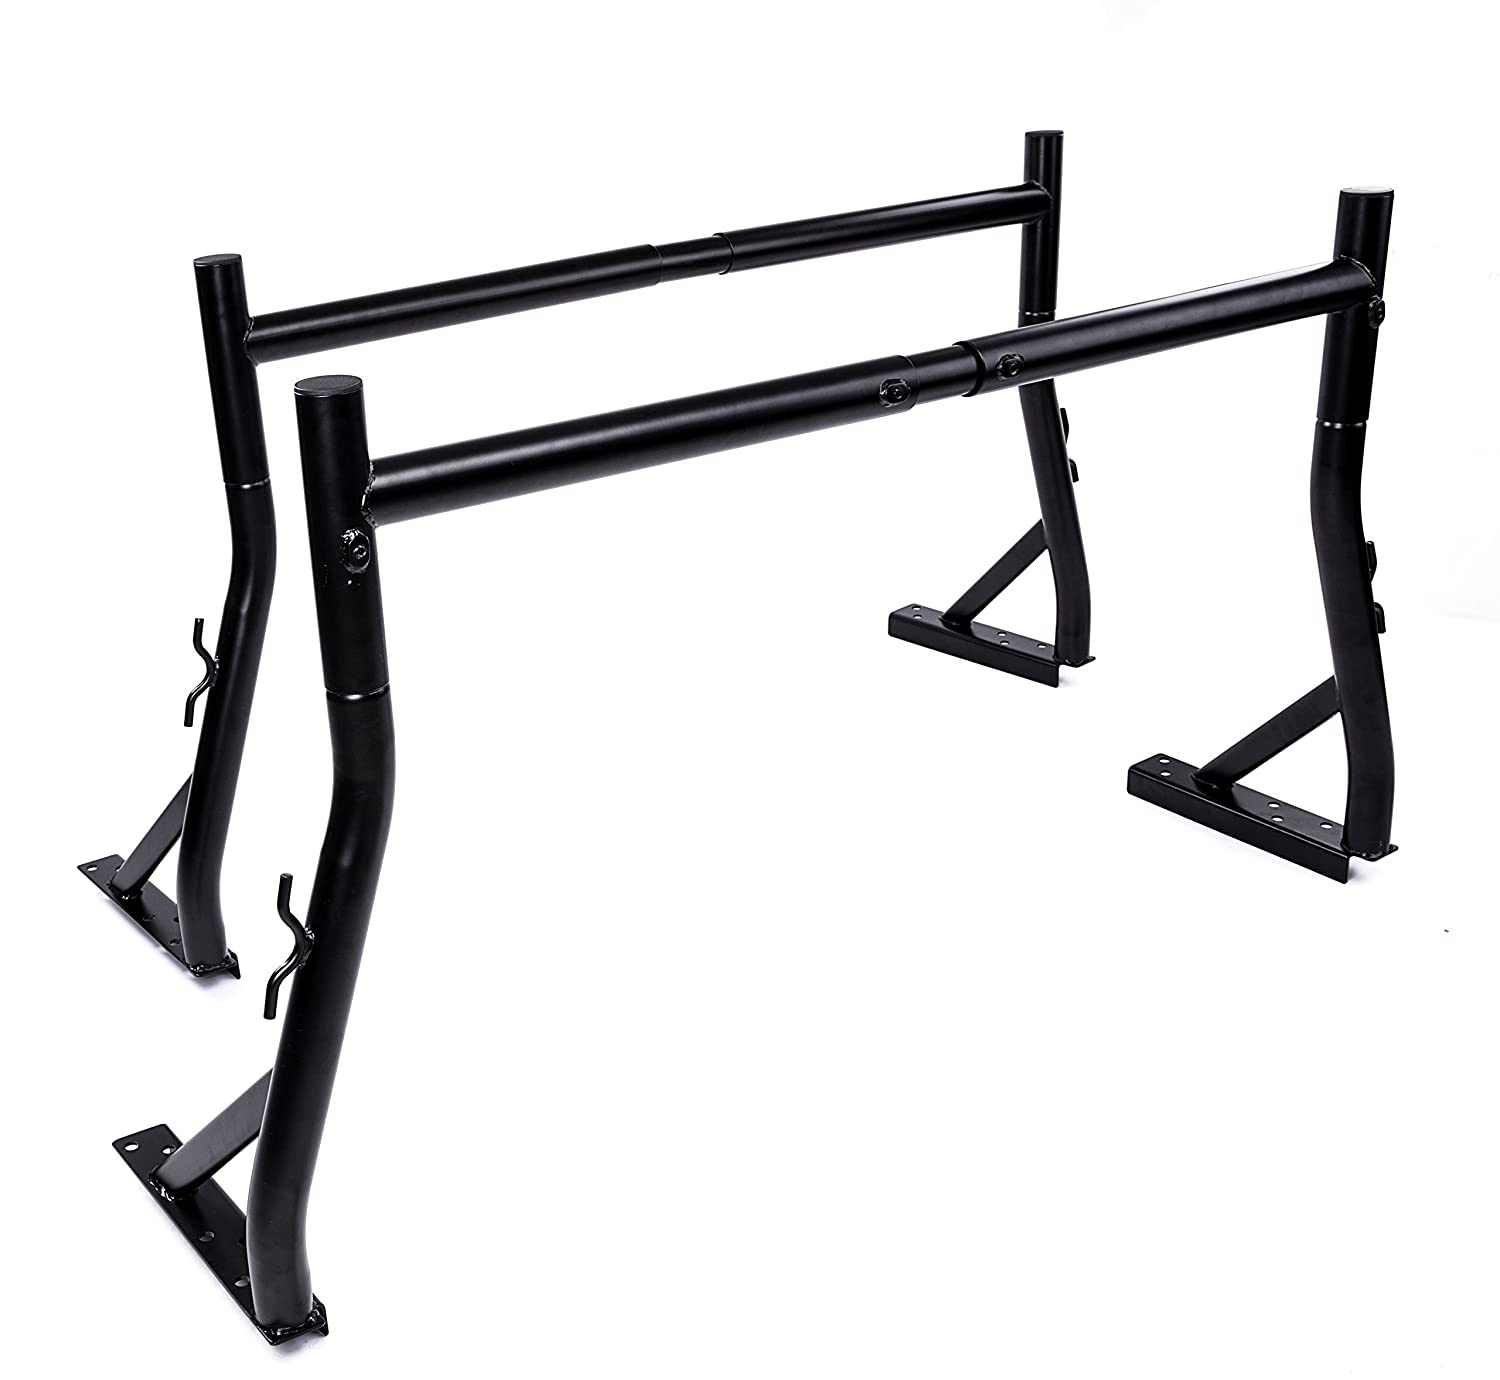 AA-Racks Model X35 800Ibs Capacity Extendable Steel Pick-Up Truck Ladder Rack Two-bar Set - Matte Black